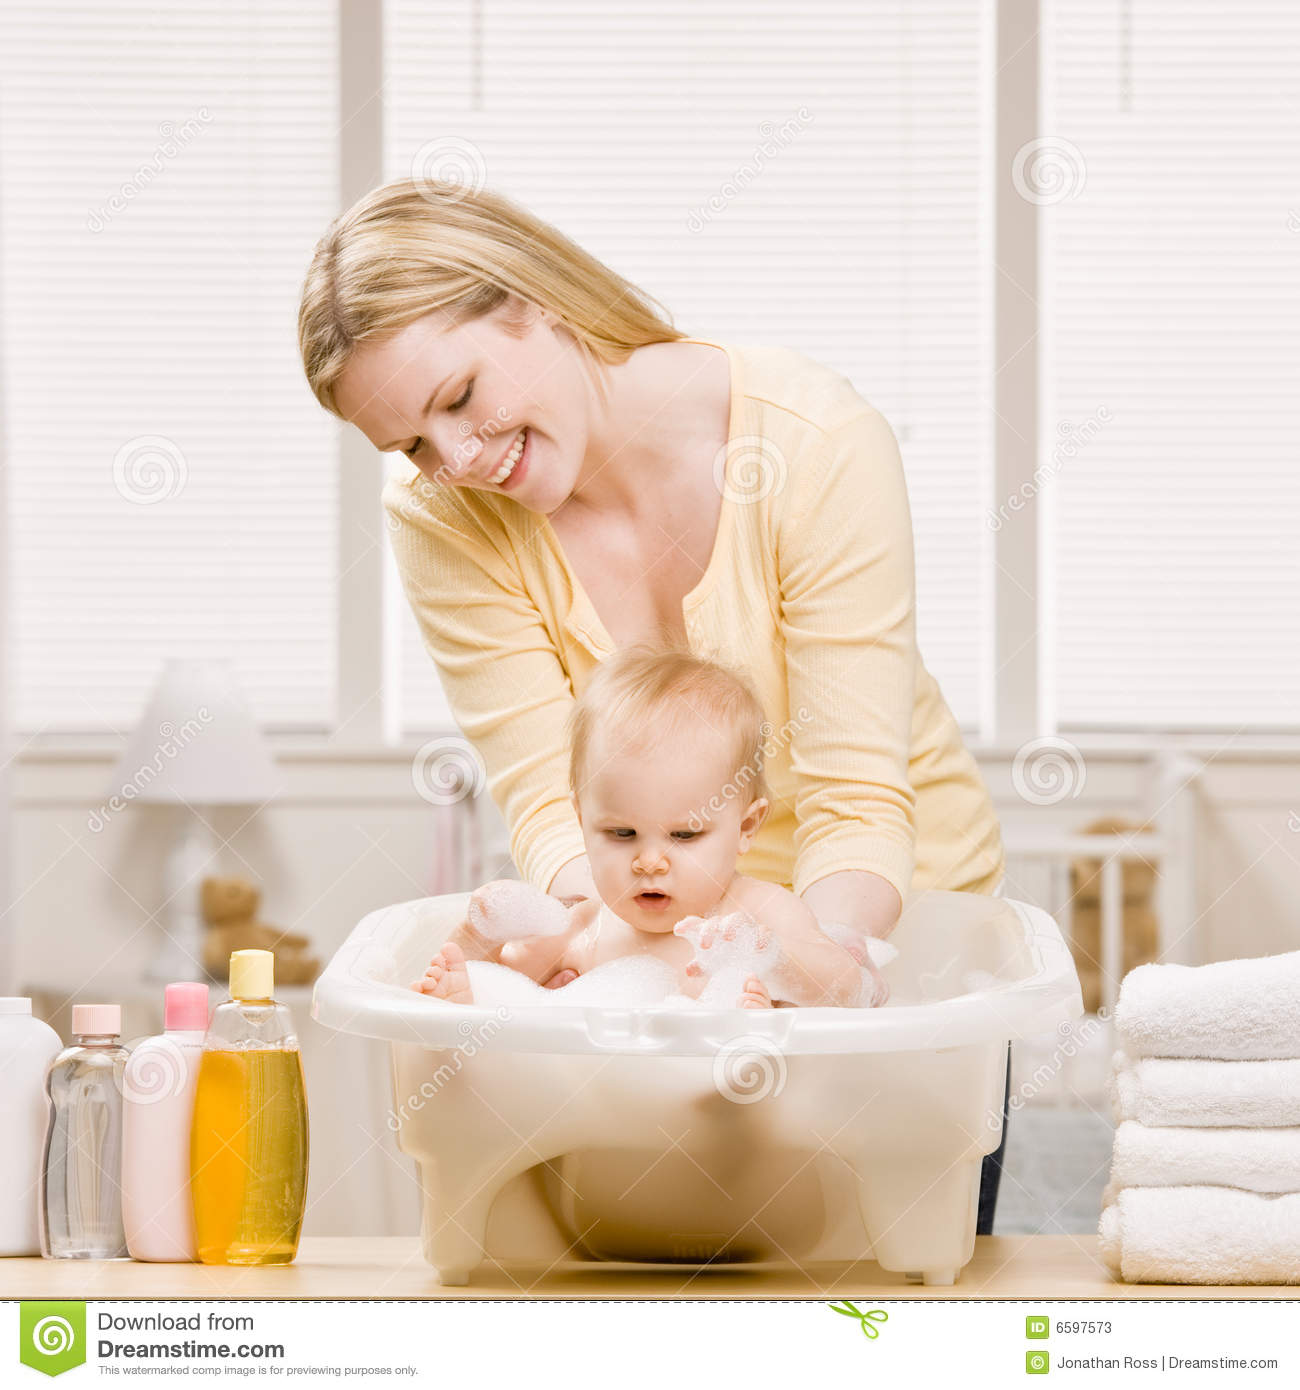 Mother Give Baby Girl A Bath Stock Image - Image of innocence ...